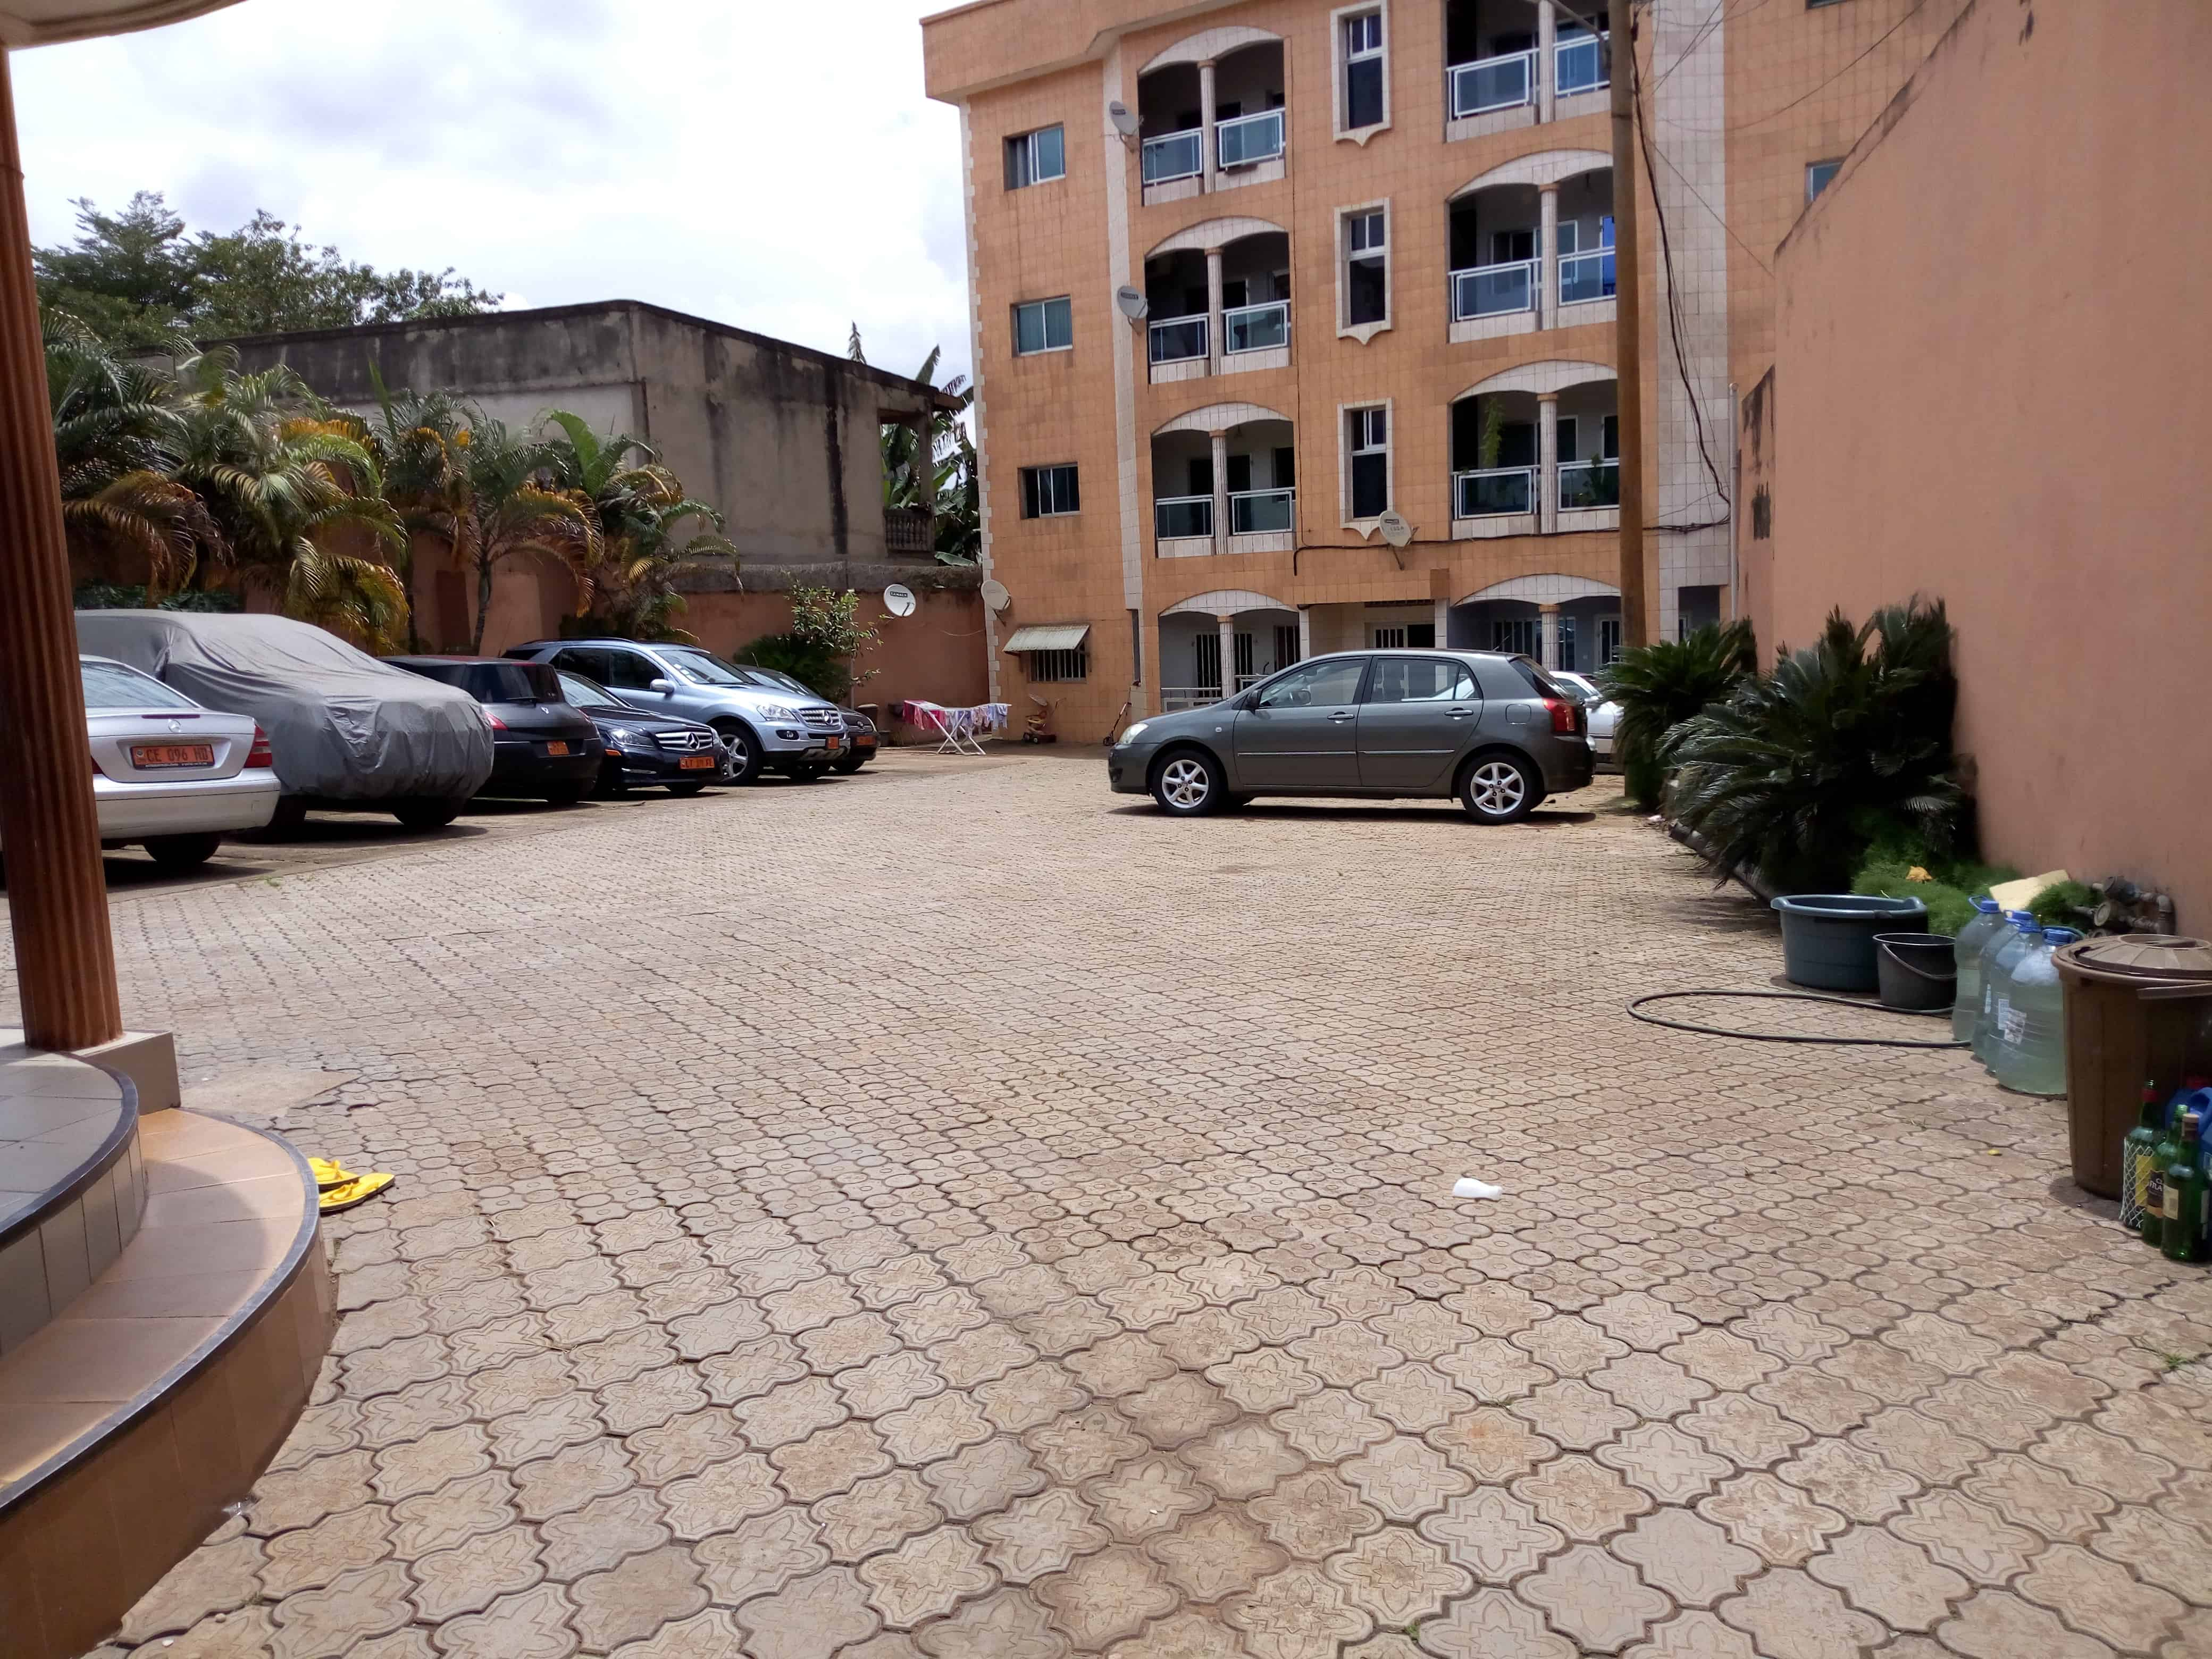 Apartment to rent - Yaoundé, Biyem-Assi, immobilier - 1 living room(s), 2 bedroom(s), 1 bathroom(s) - 150 000 FCFA / month